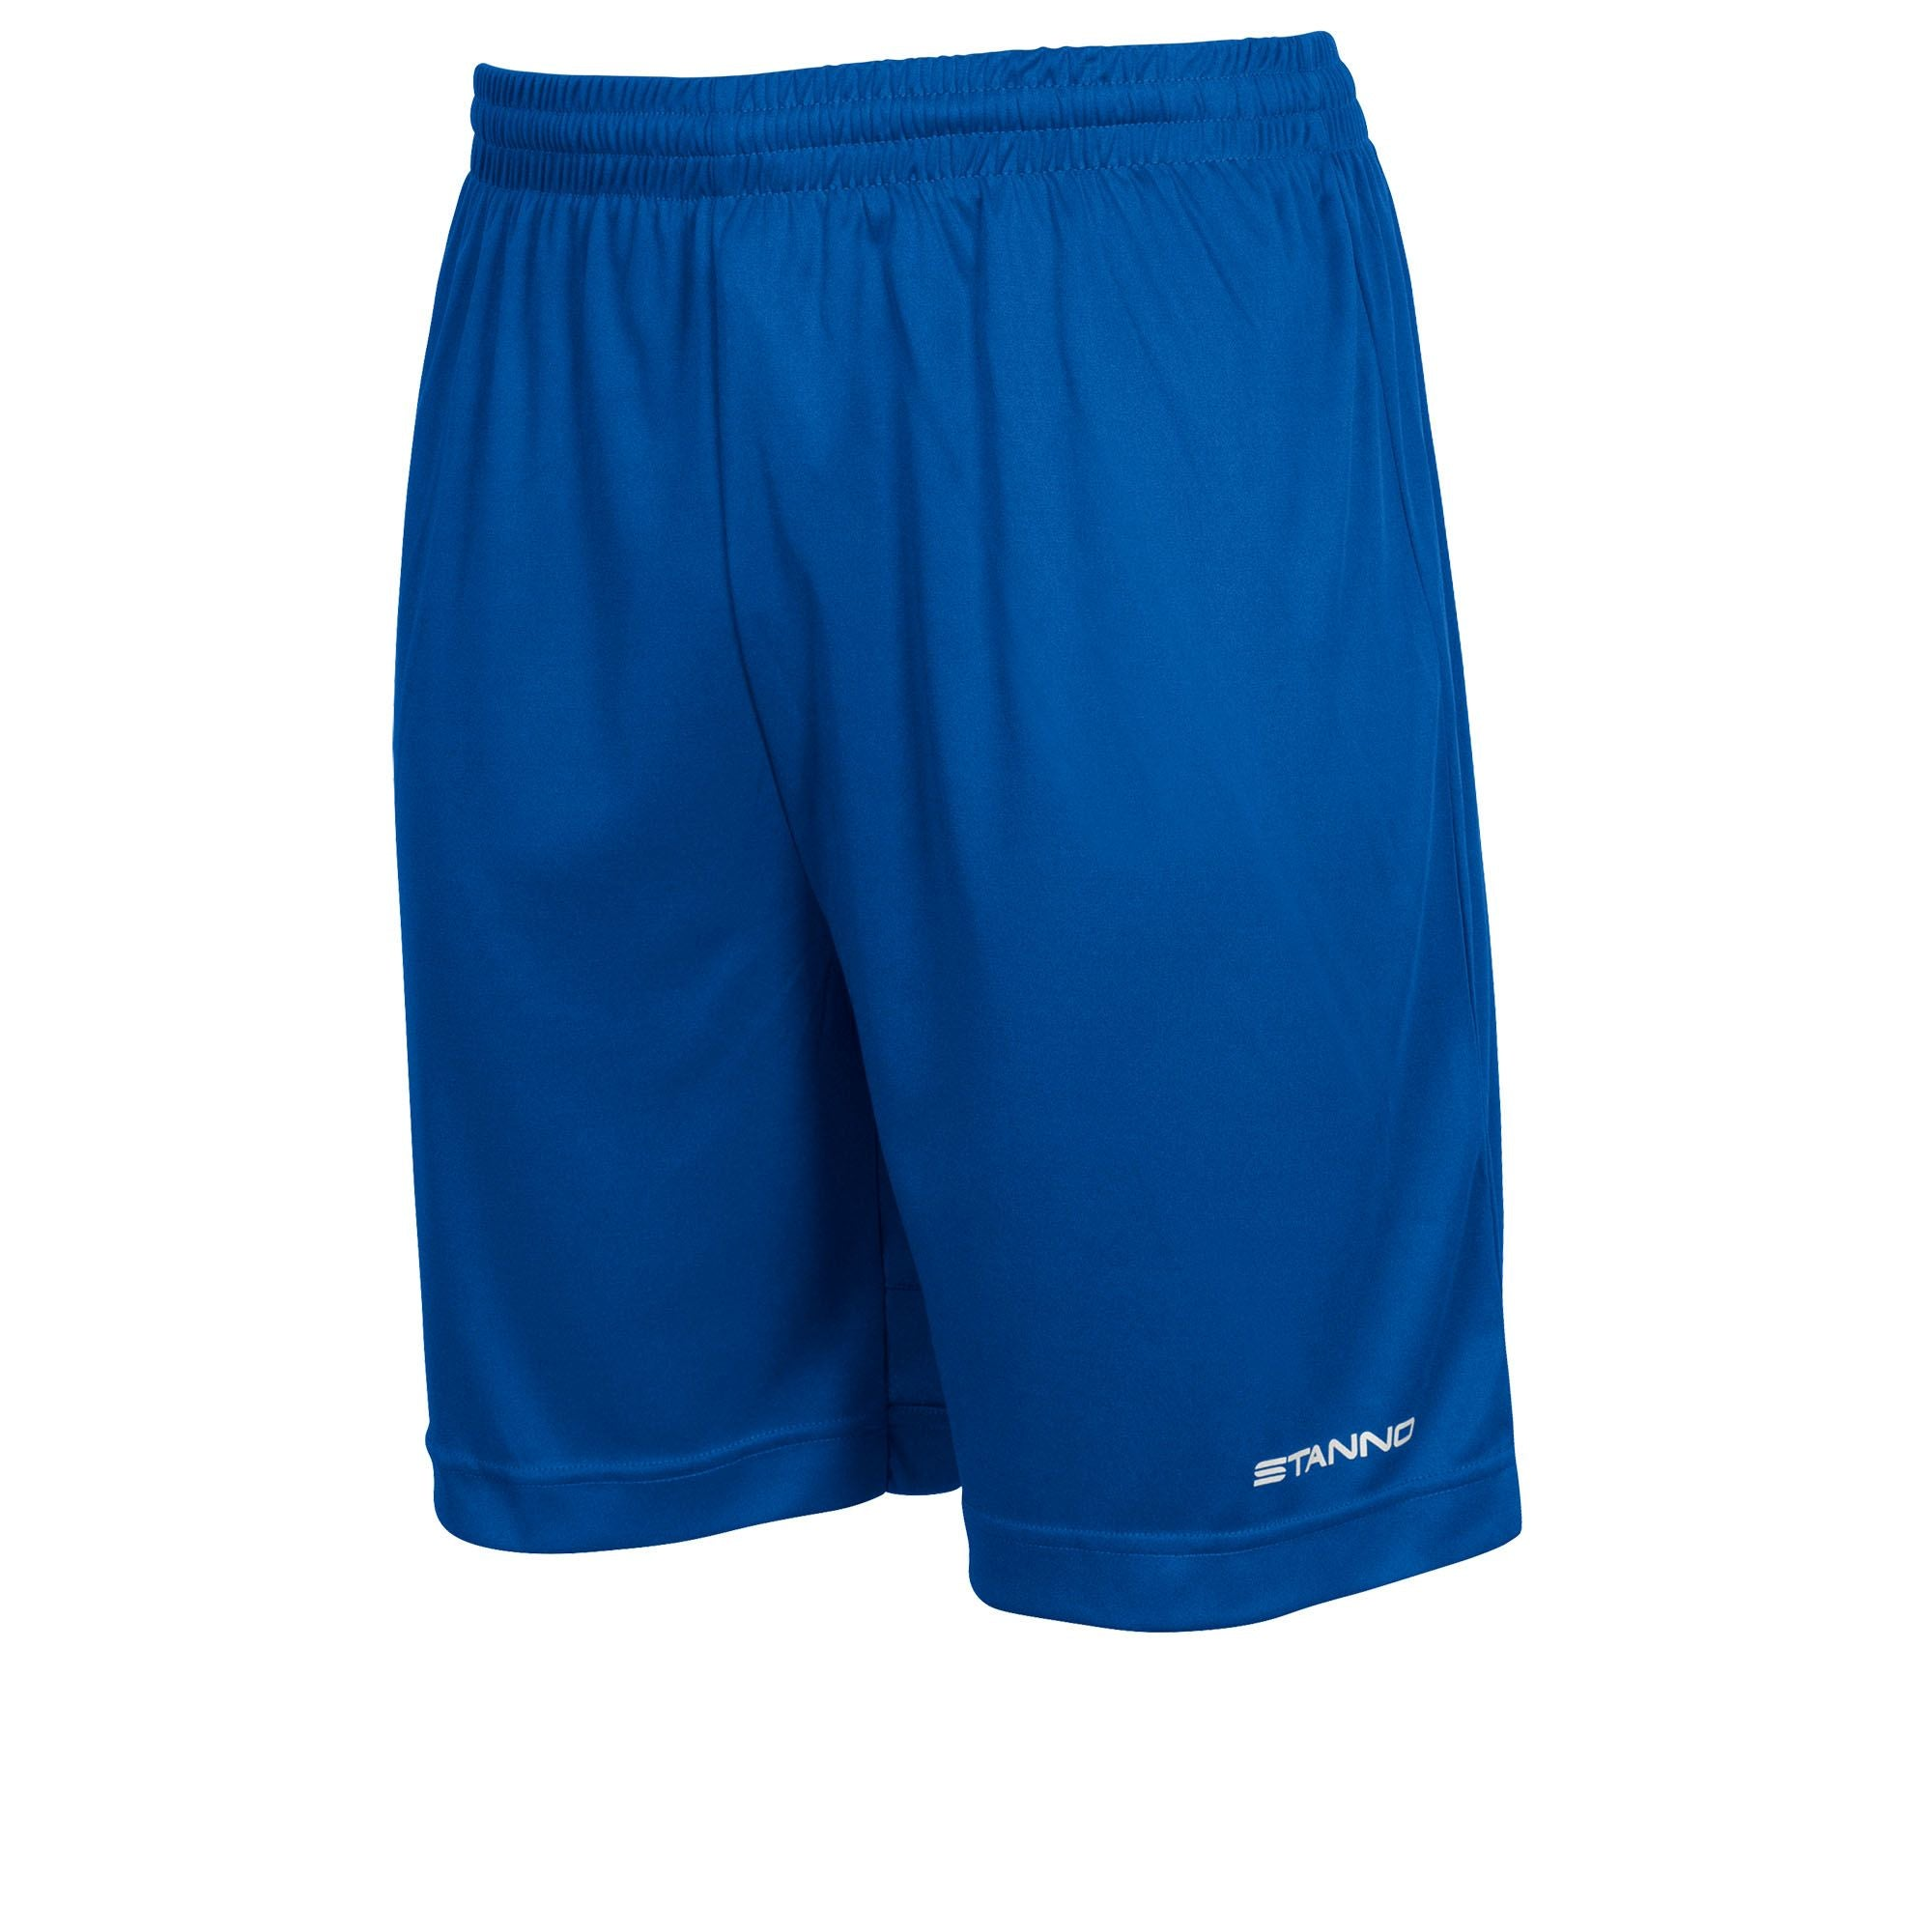 Stanno Field shorts in royal blue